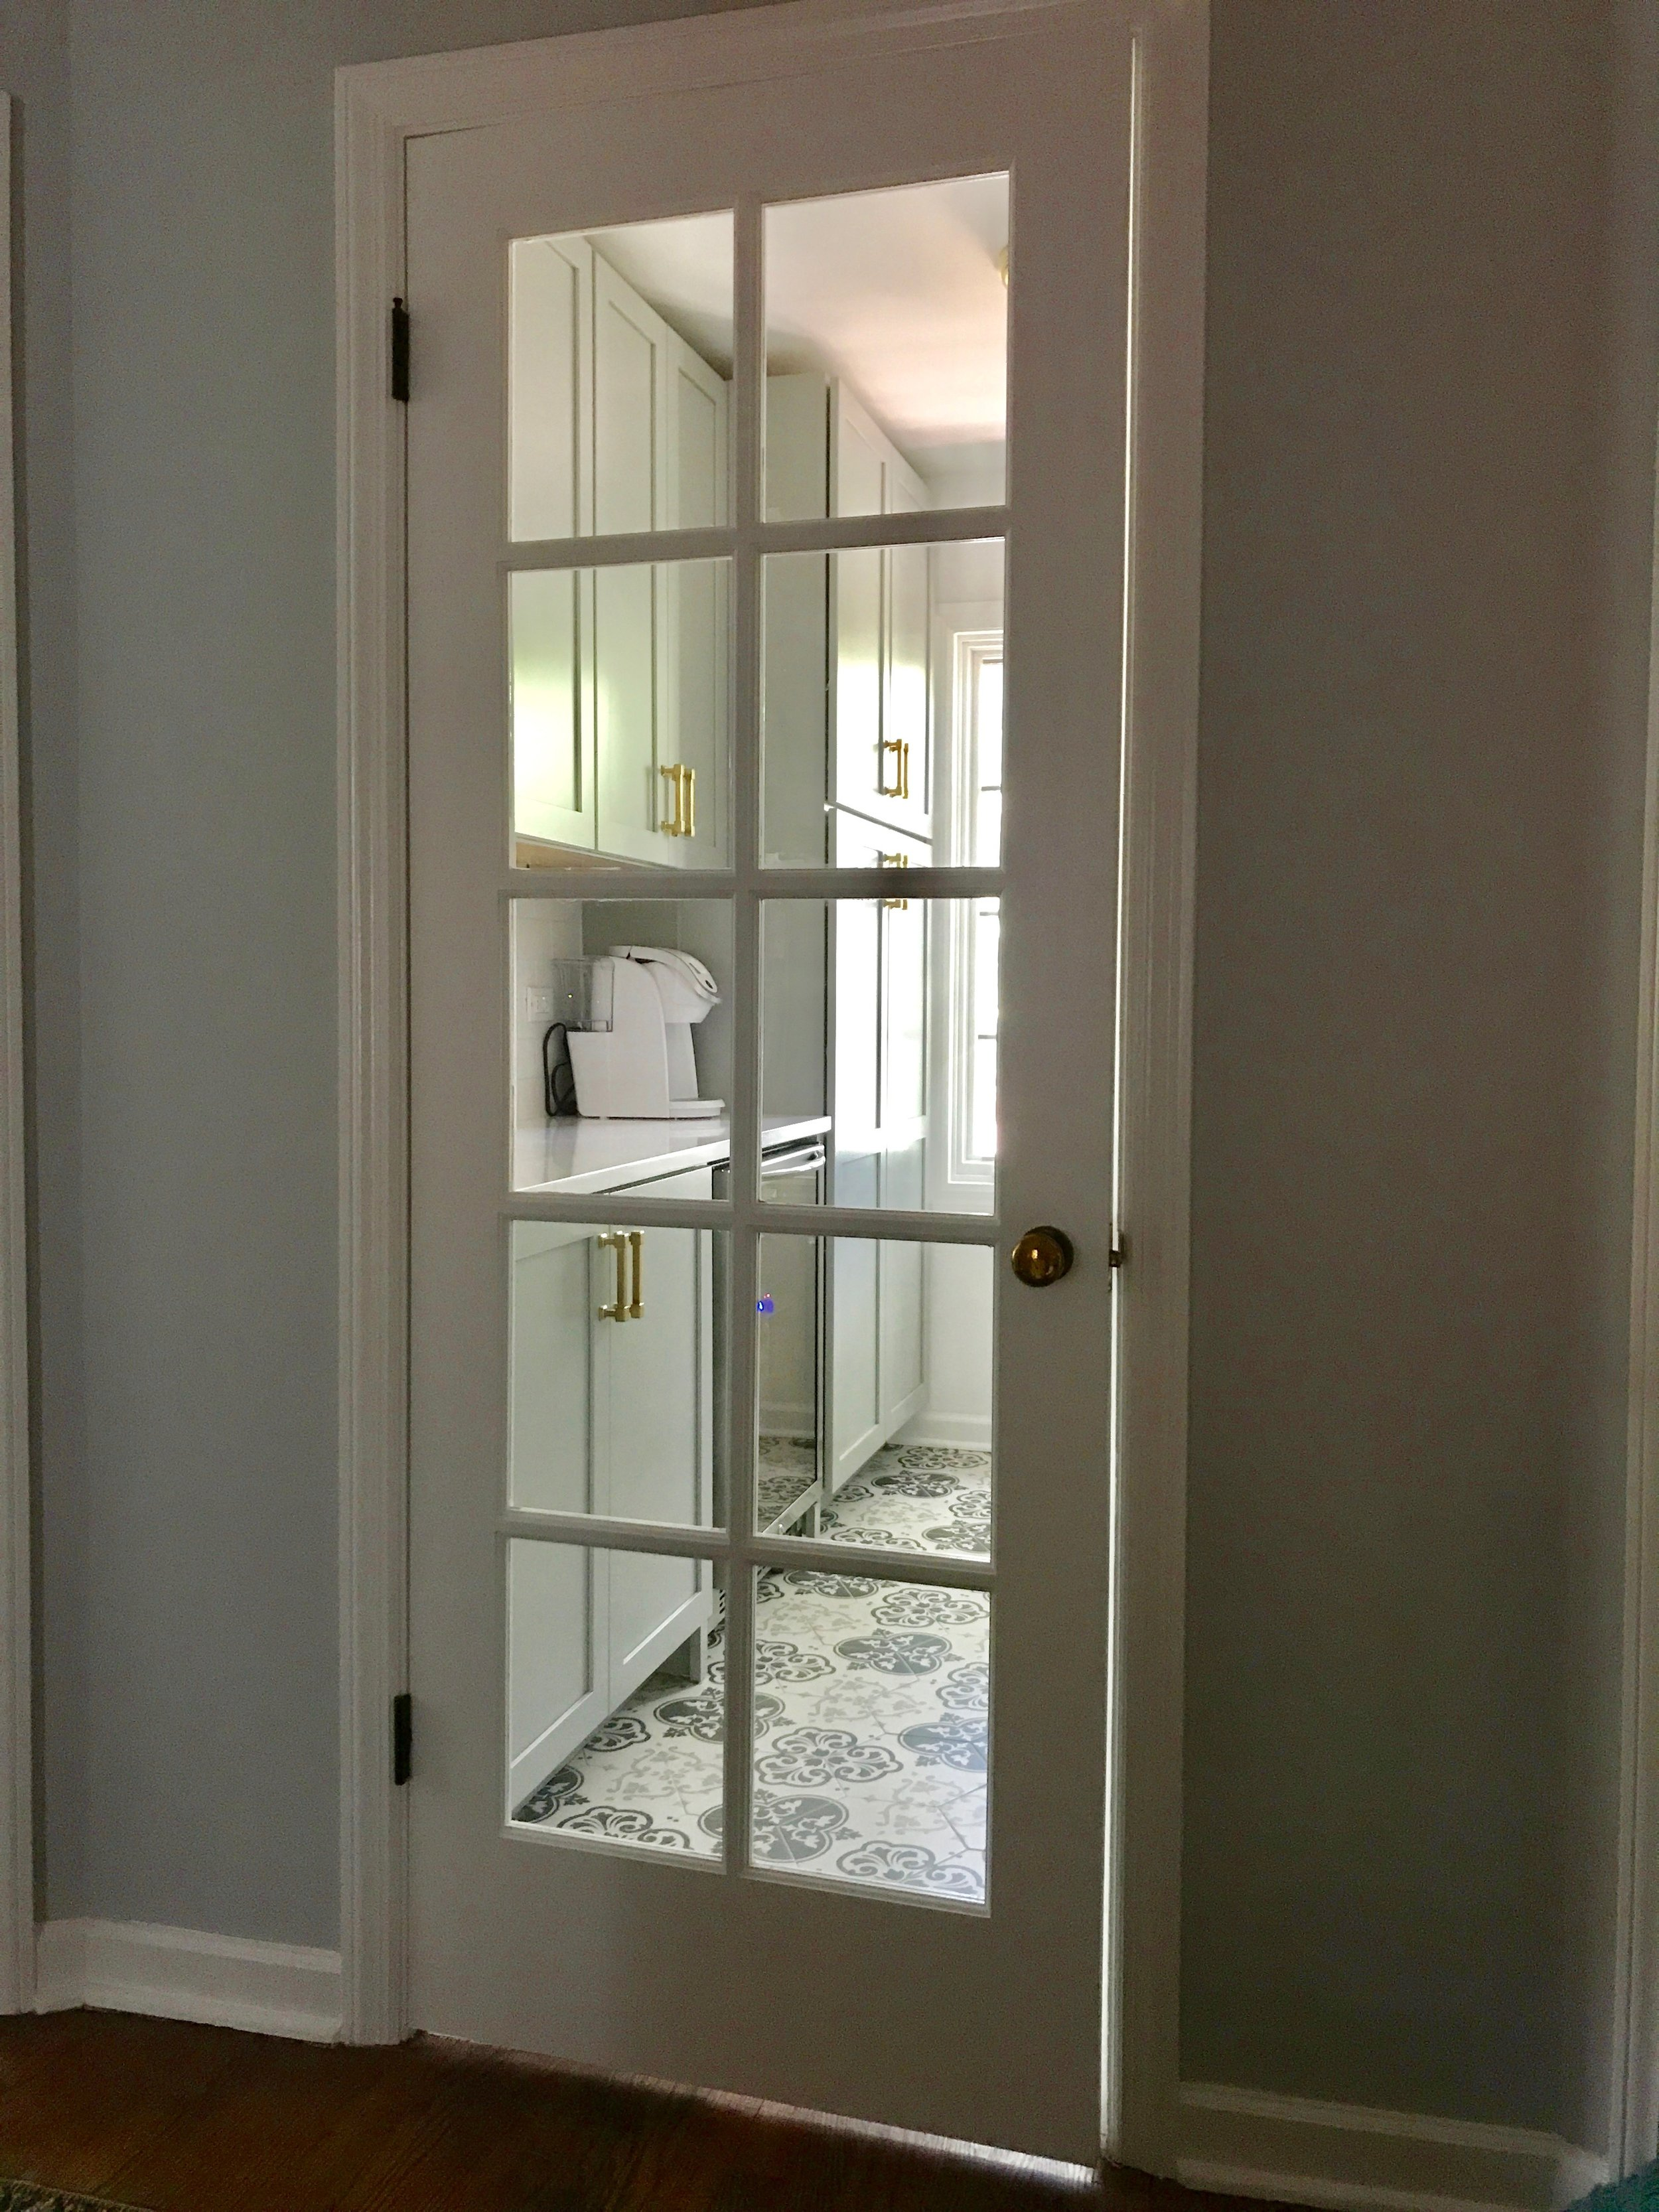 No longer a closed storage room, it was time to reclaim the natural light with a new 10-lite glass door.